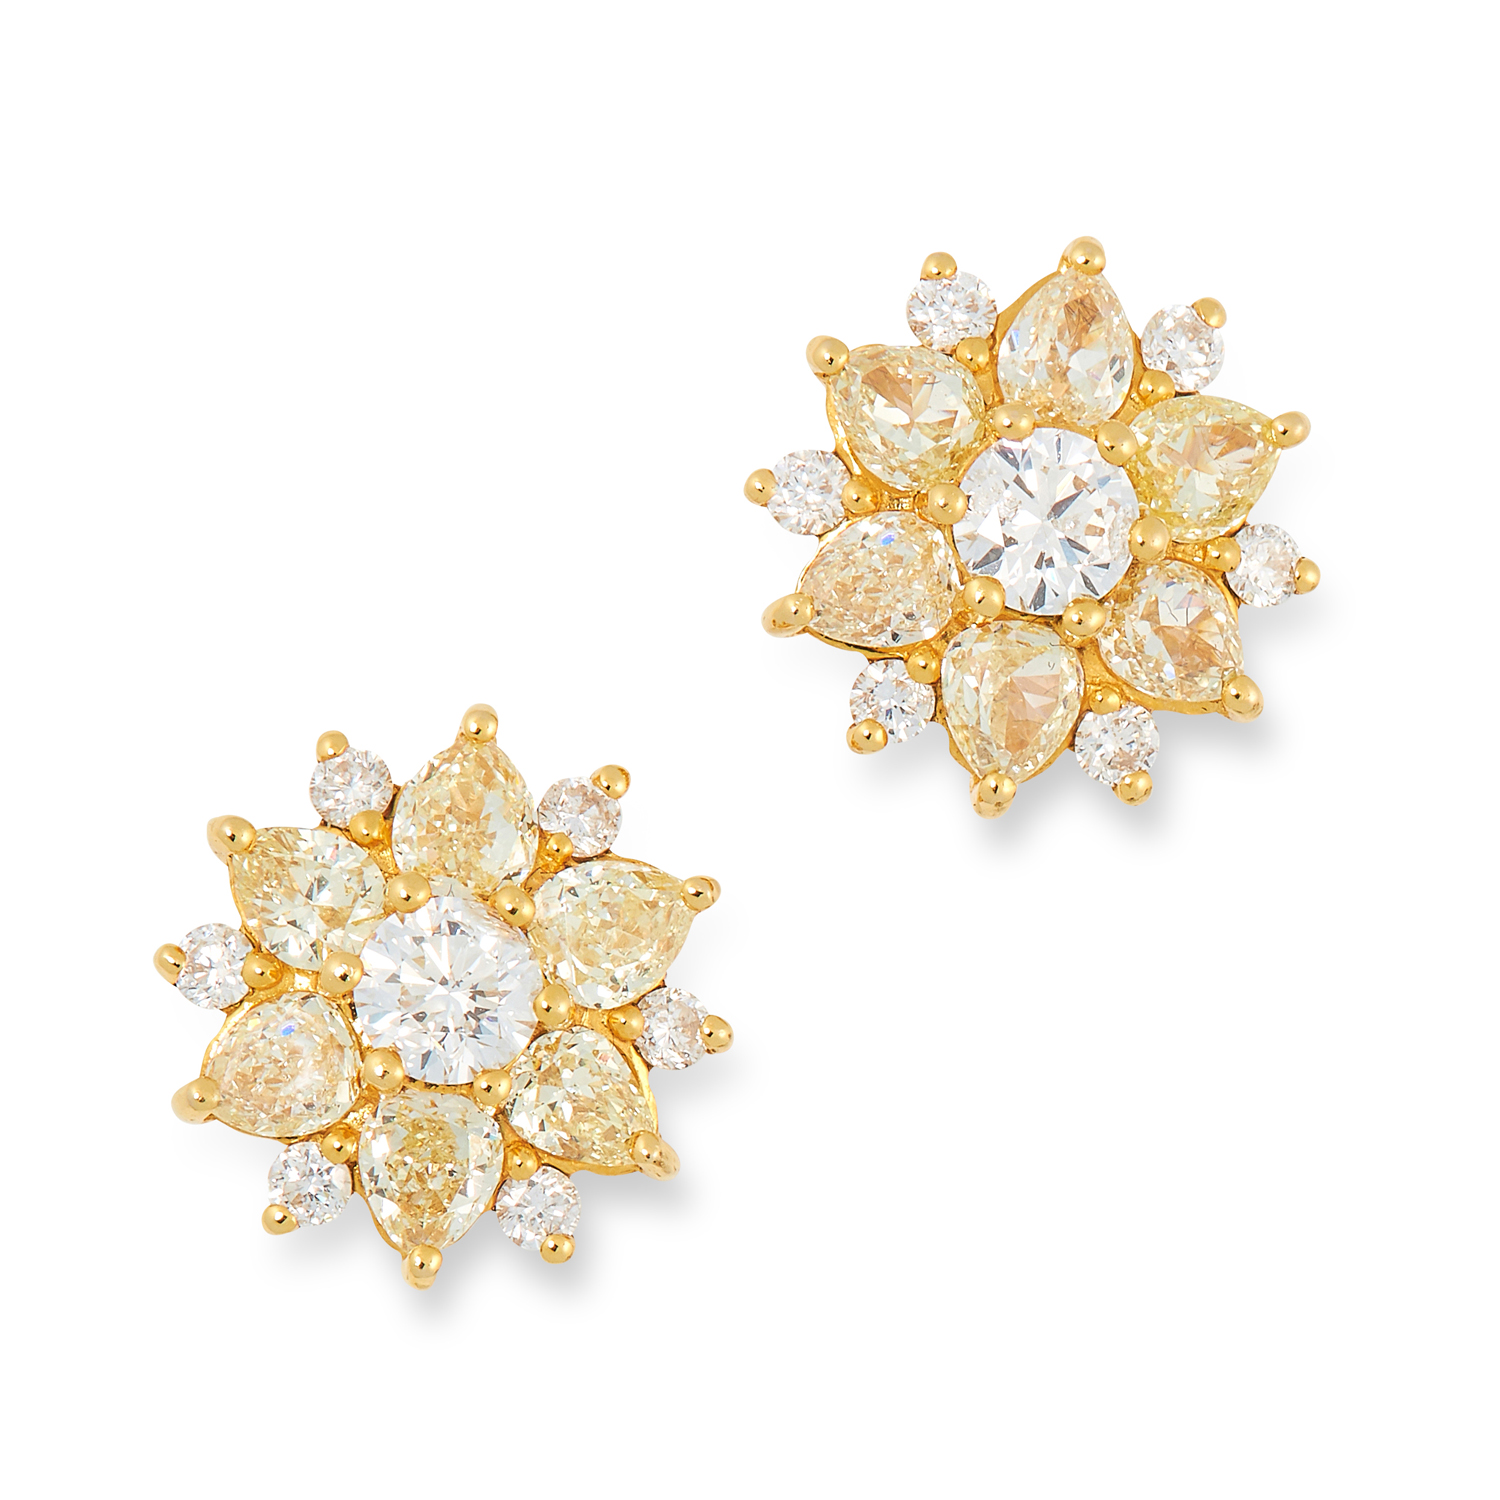 A PAIR OF YELLOW AND WHITE DIAMOND CLUSTER EARRINGS set with pear modern brilliant cut diamonds